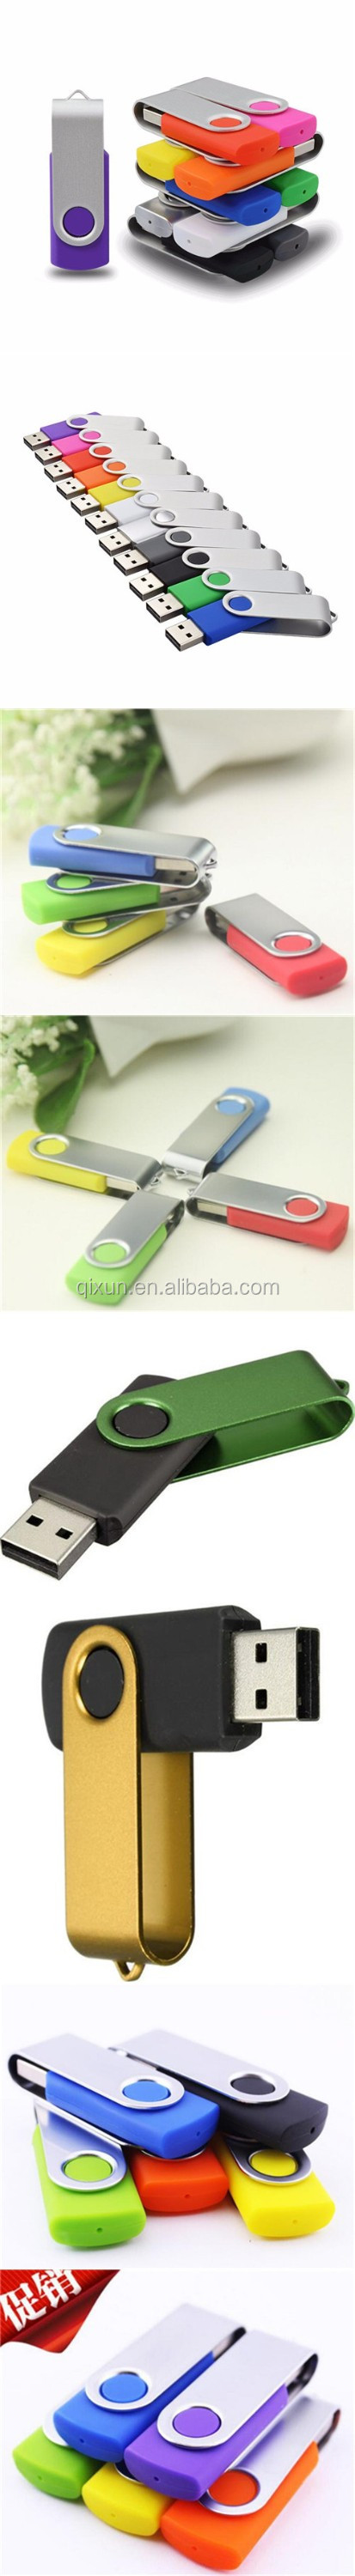 assurance alipay and paypal accept 32gb 3.0 wholesale flash drive usb